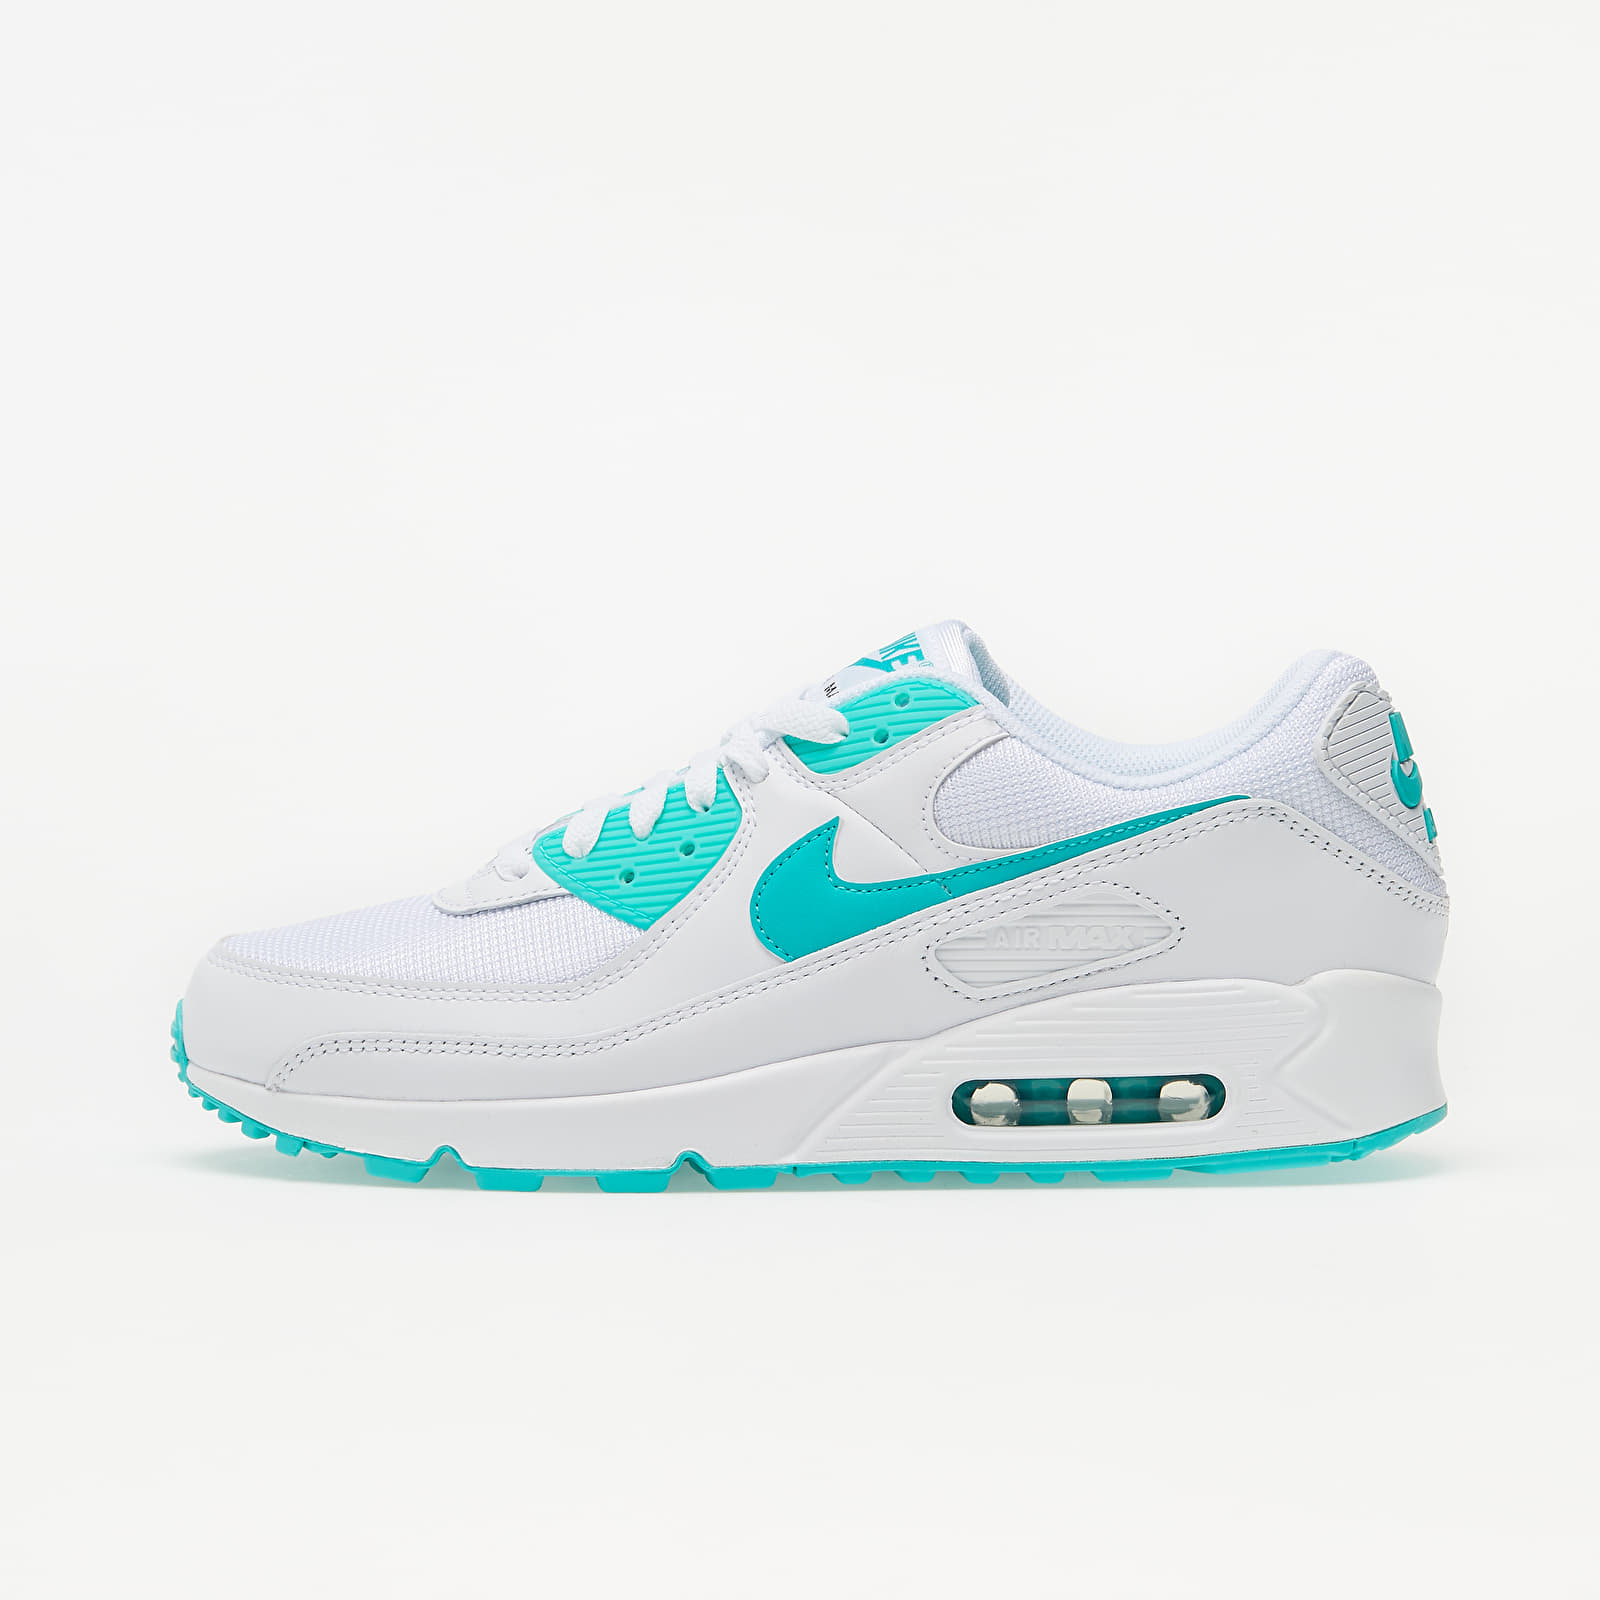 Nike Air Max 90 White/ Hyper Jade-Black EUR 41